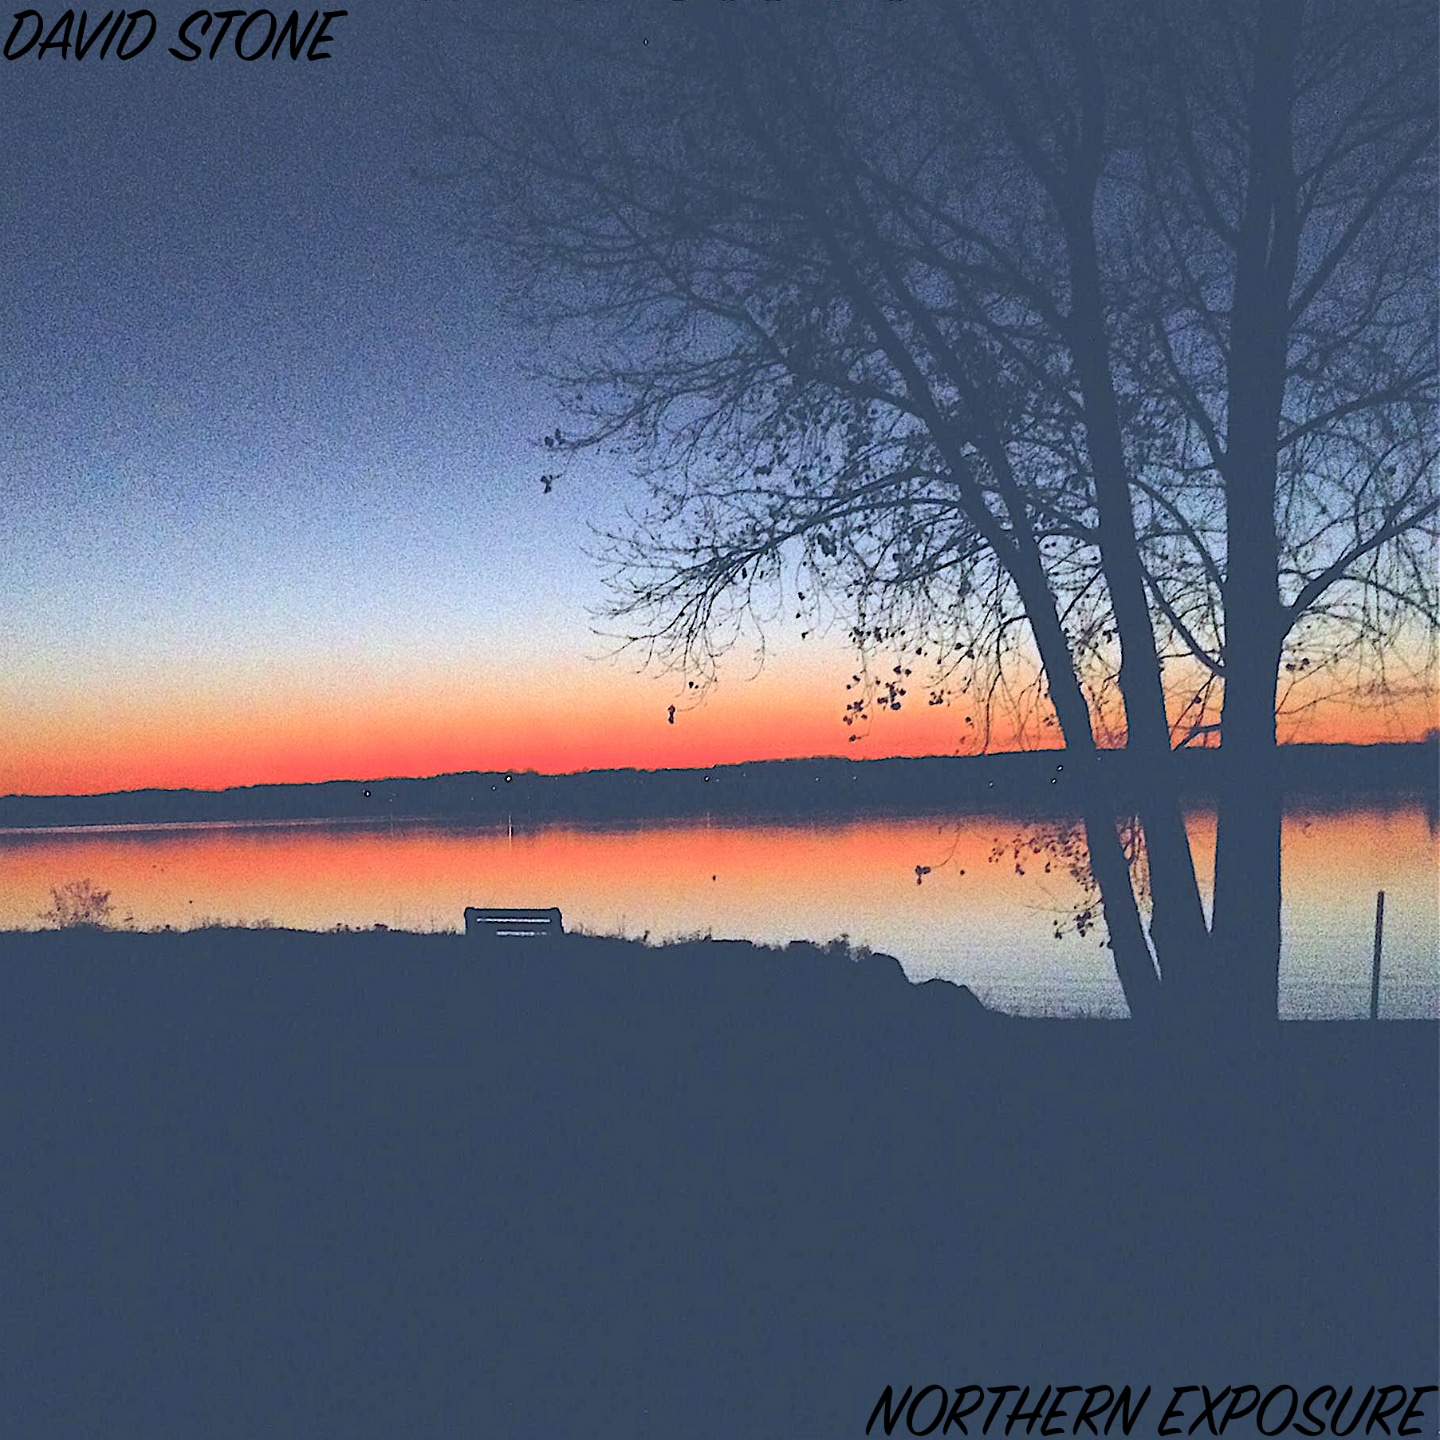 David Stone - Northern Exposure